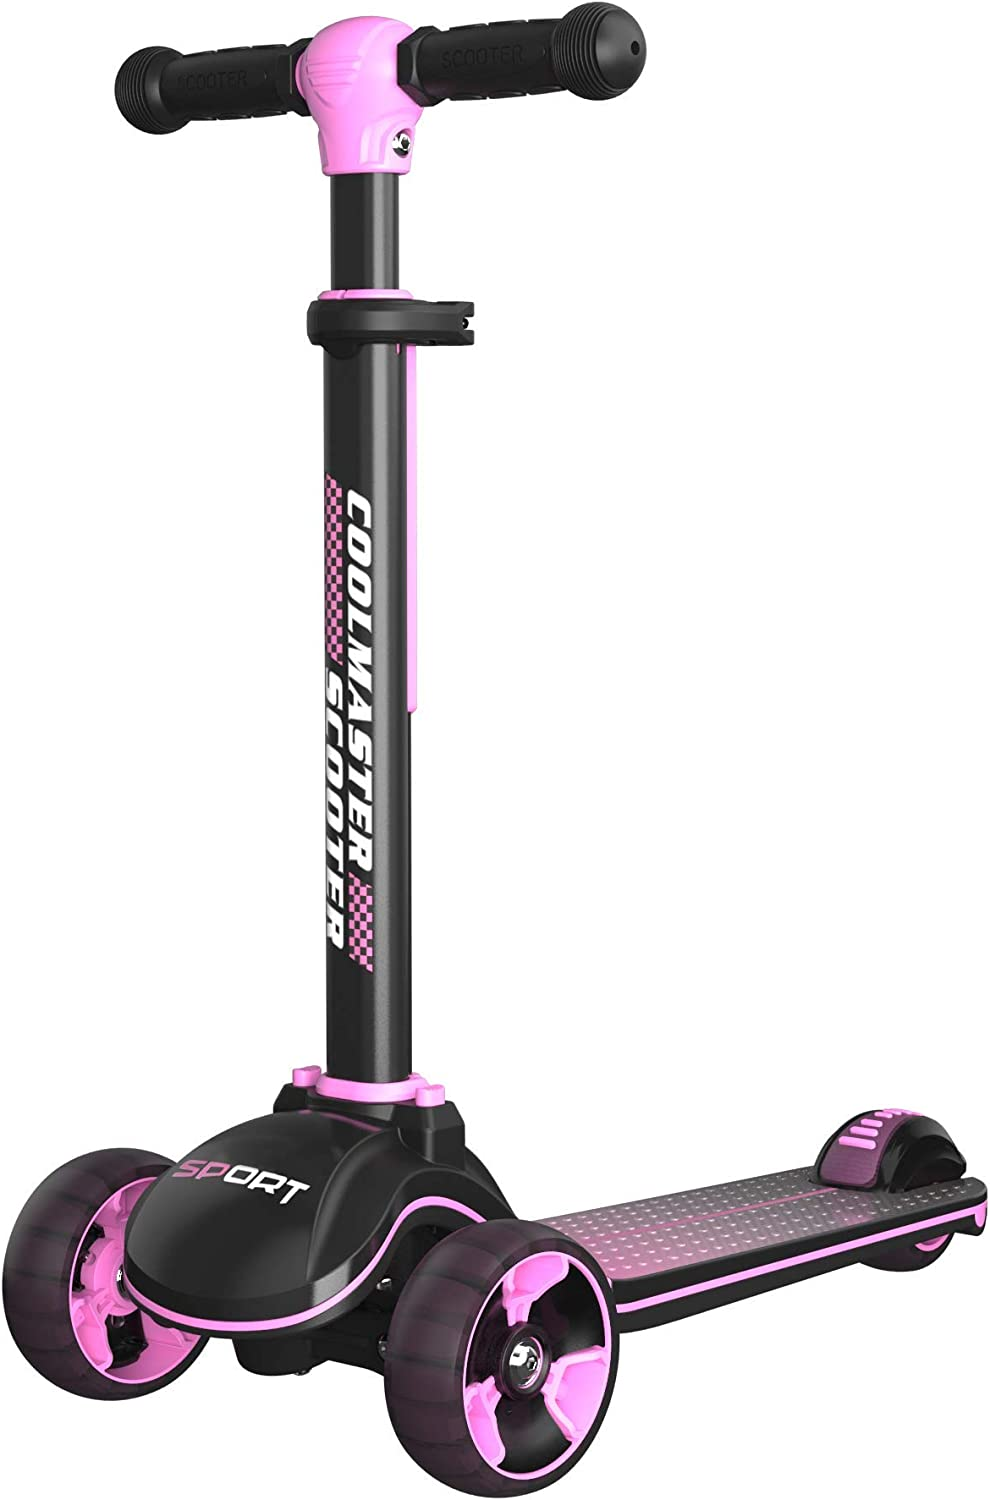 Voyage Sports X8 Fold Scooter,Height Adjustable,Light Up Wheels